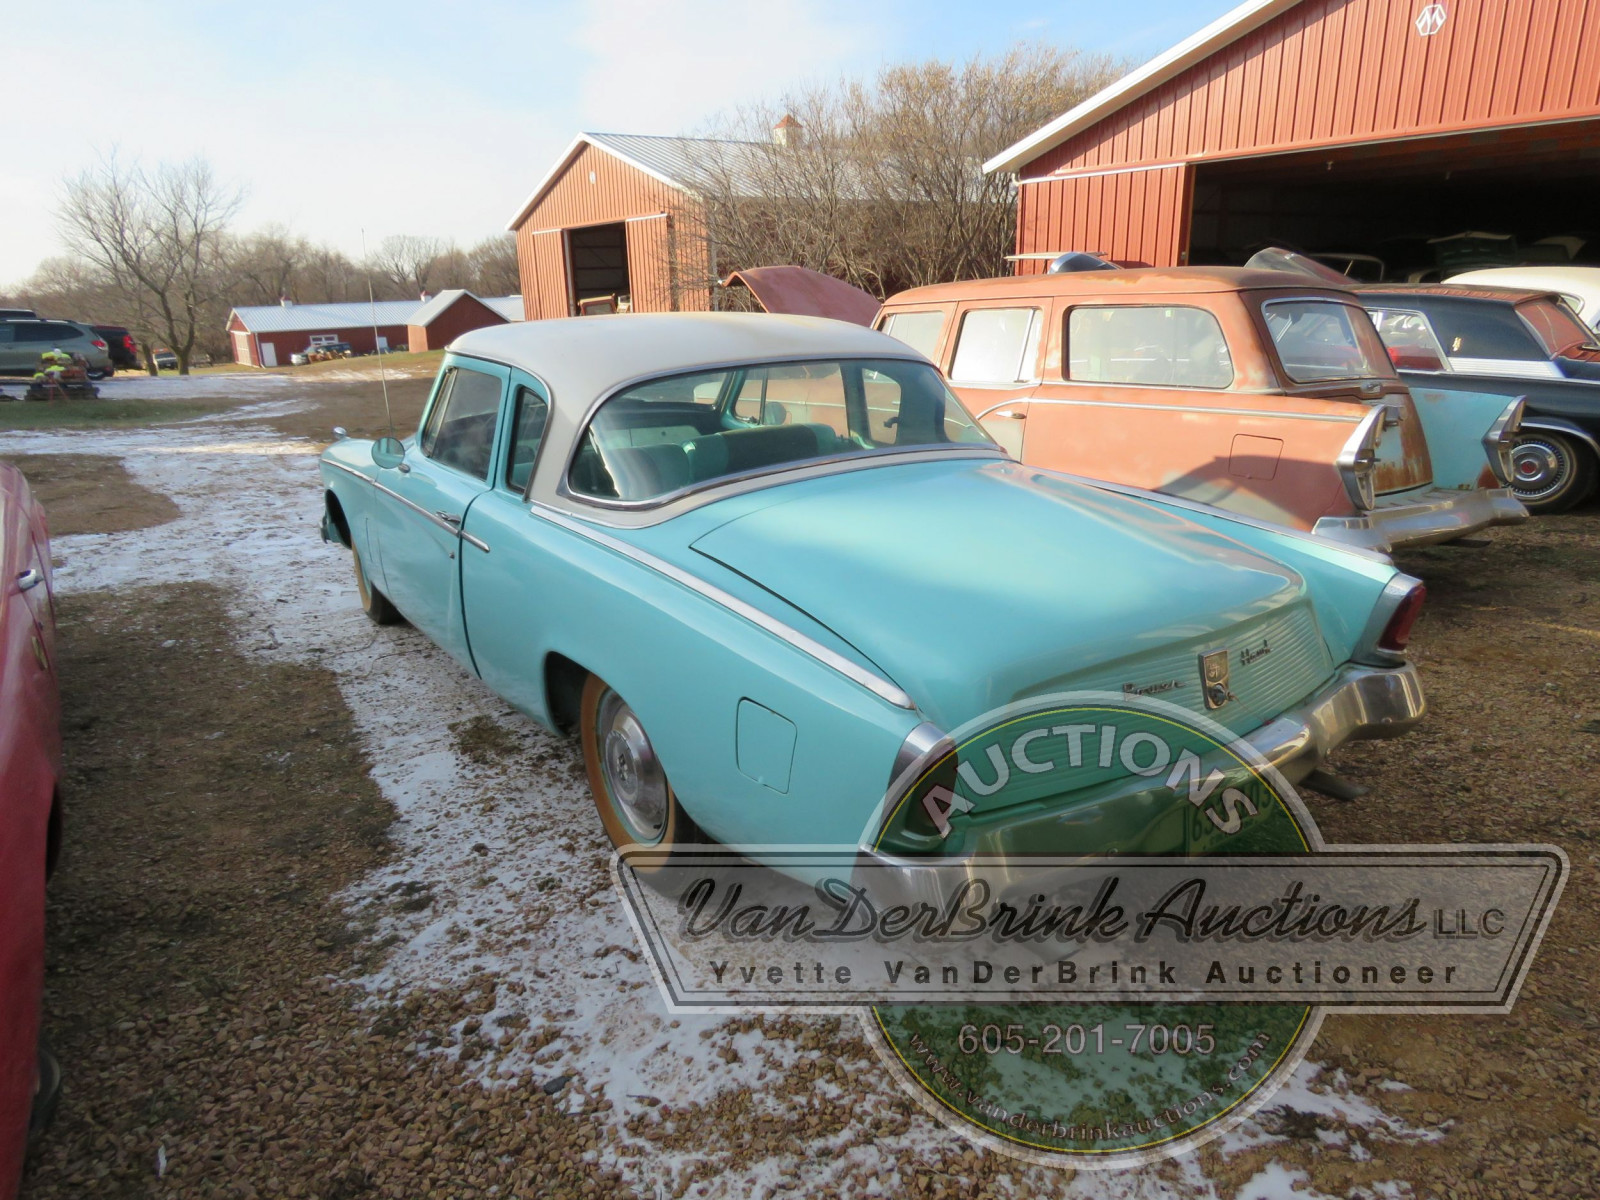 1956 Studebaker Power Hawk 2dr Sedan - Image 4